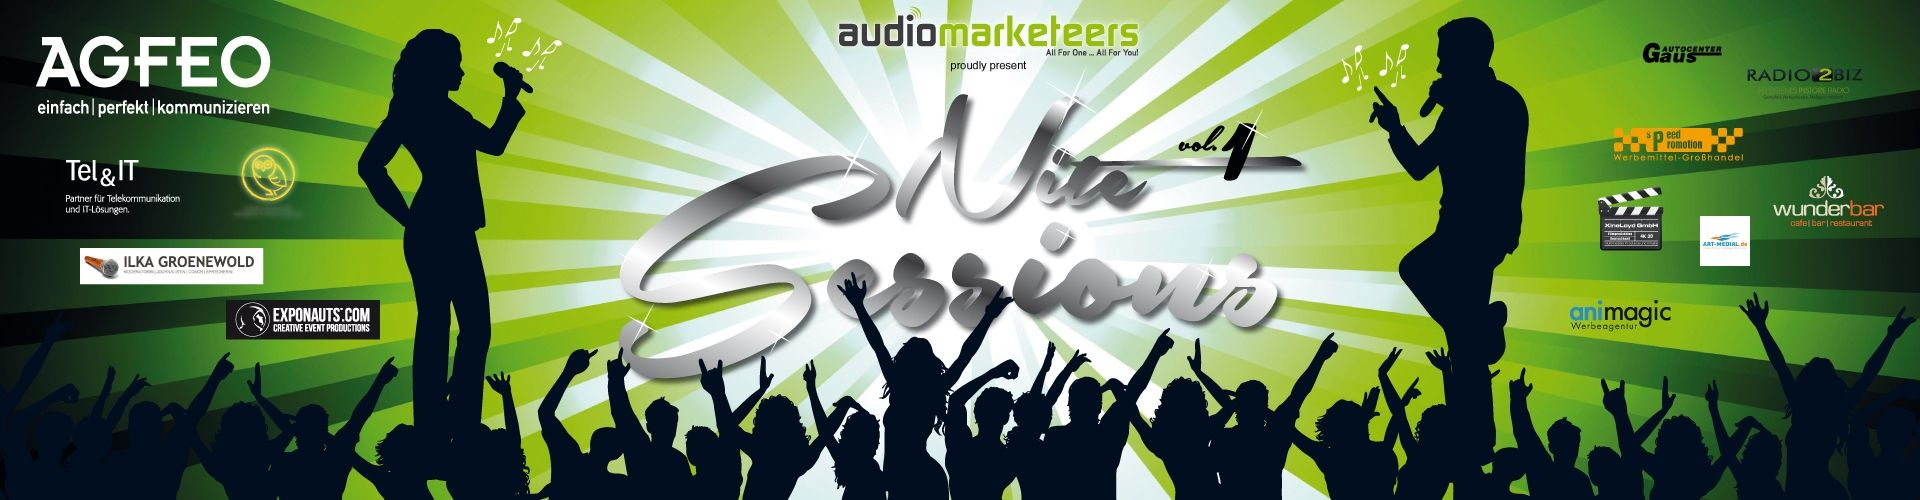 audiomarketeers_nite_sessions